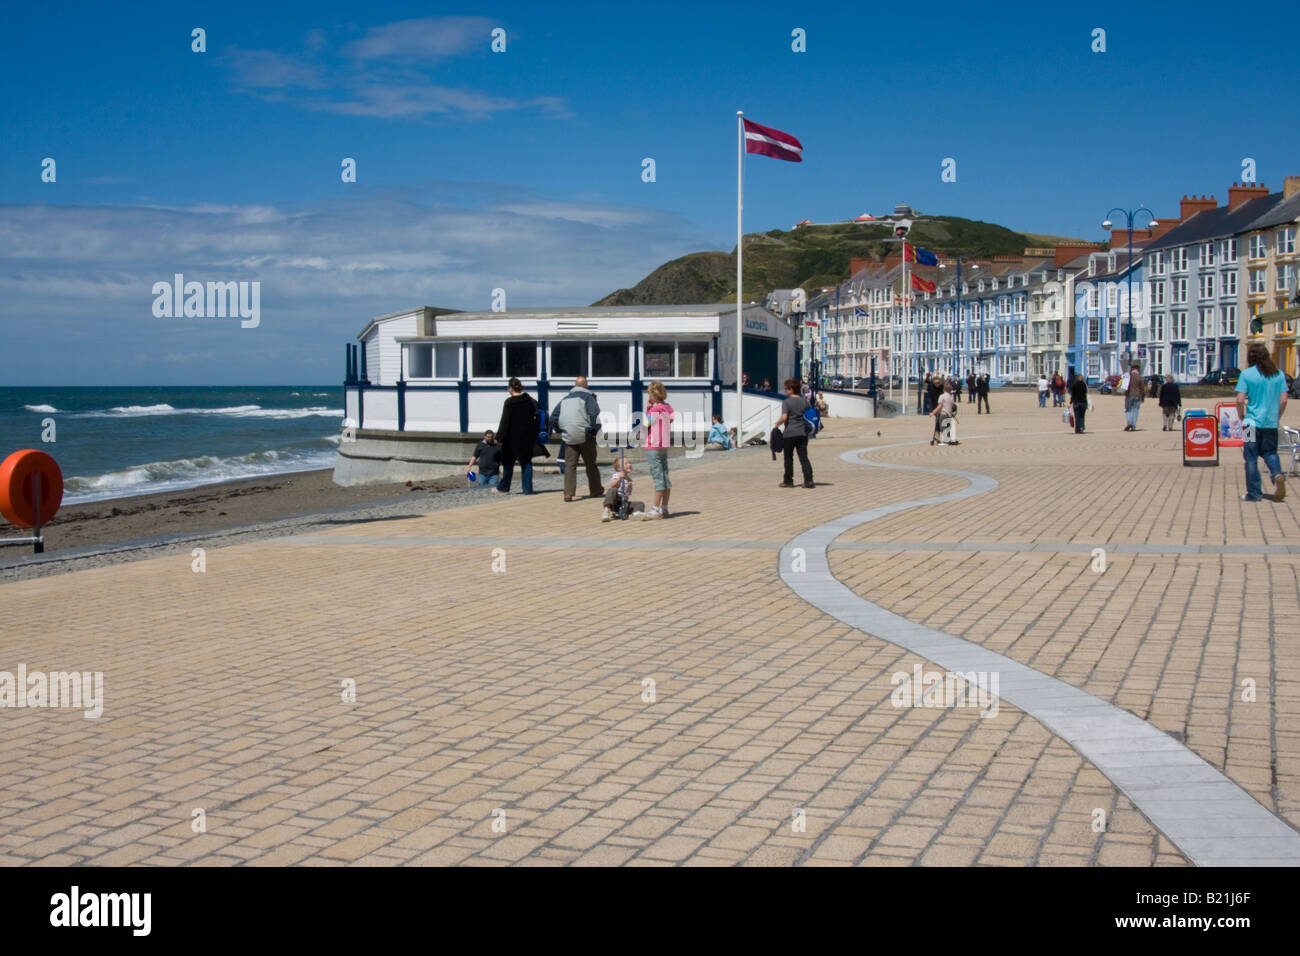 aberystwyth promenade showing bandstand and constitution hill Stock Photo